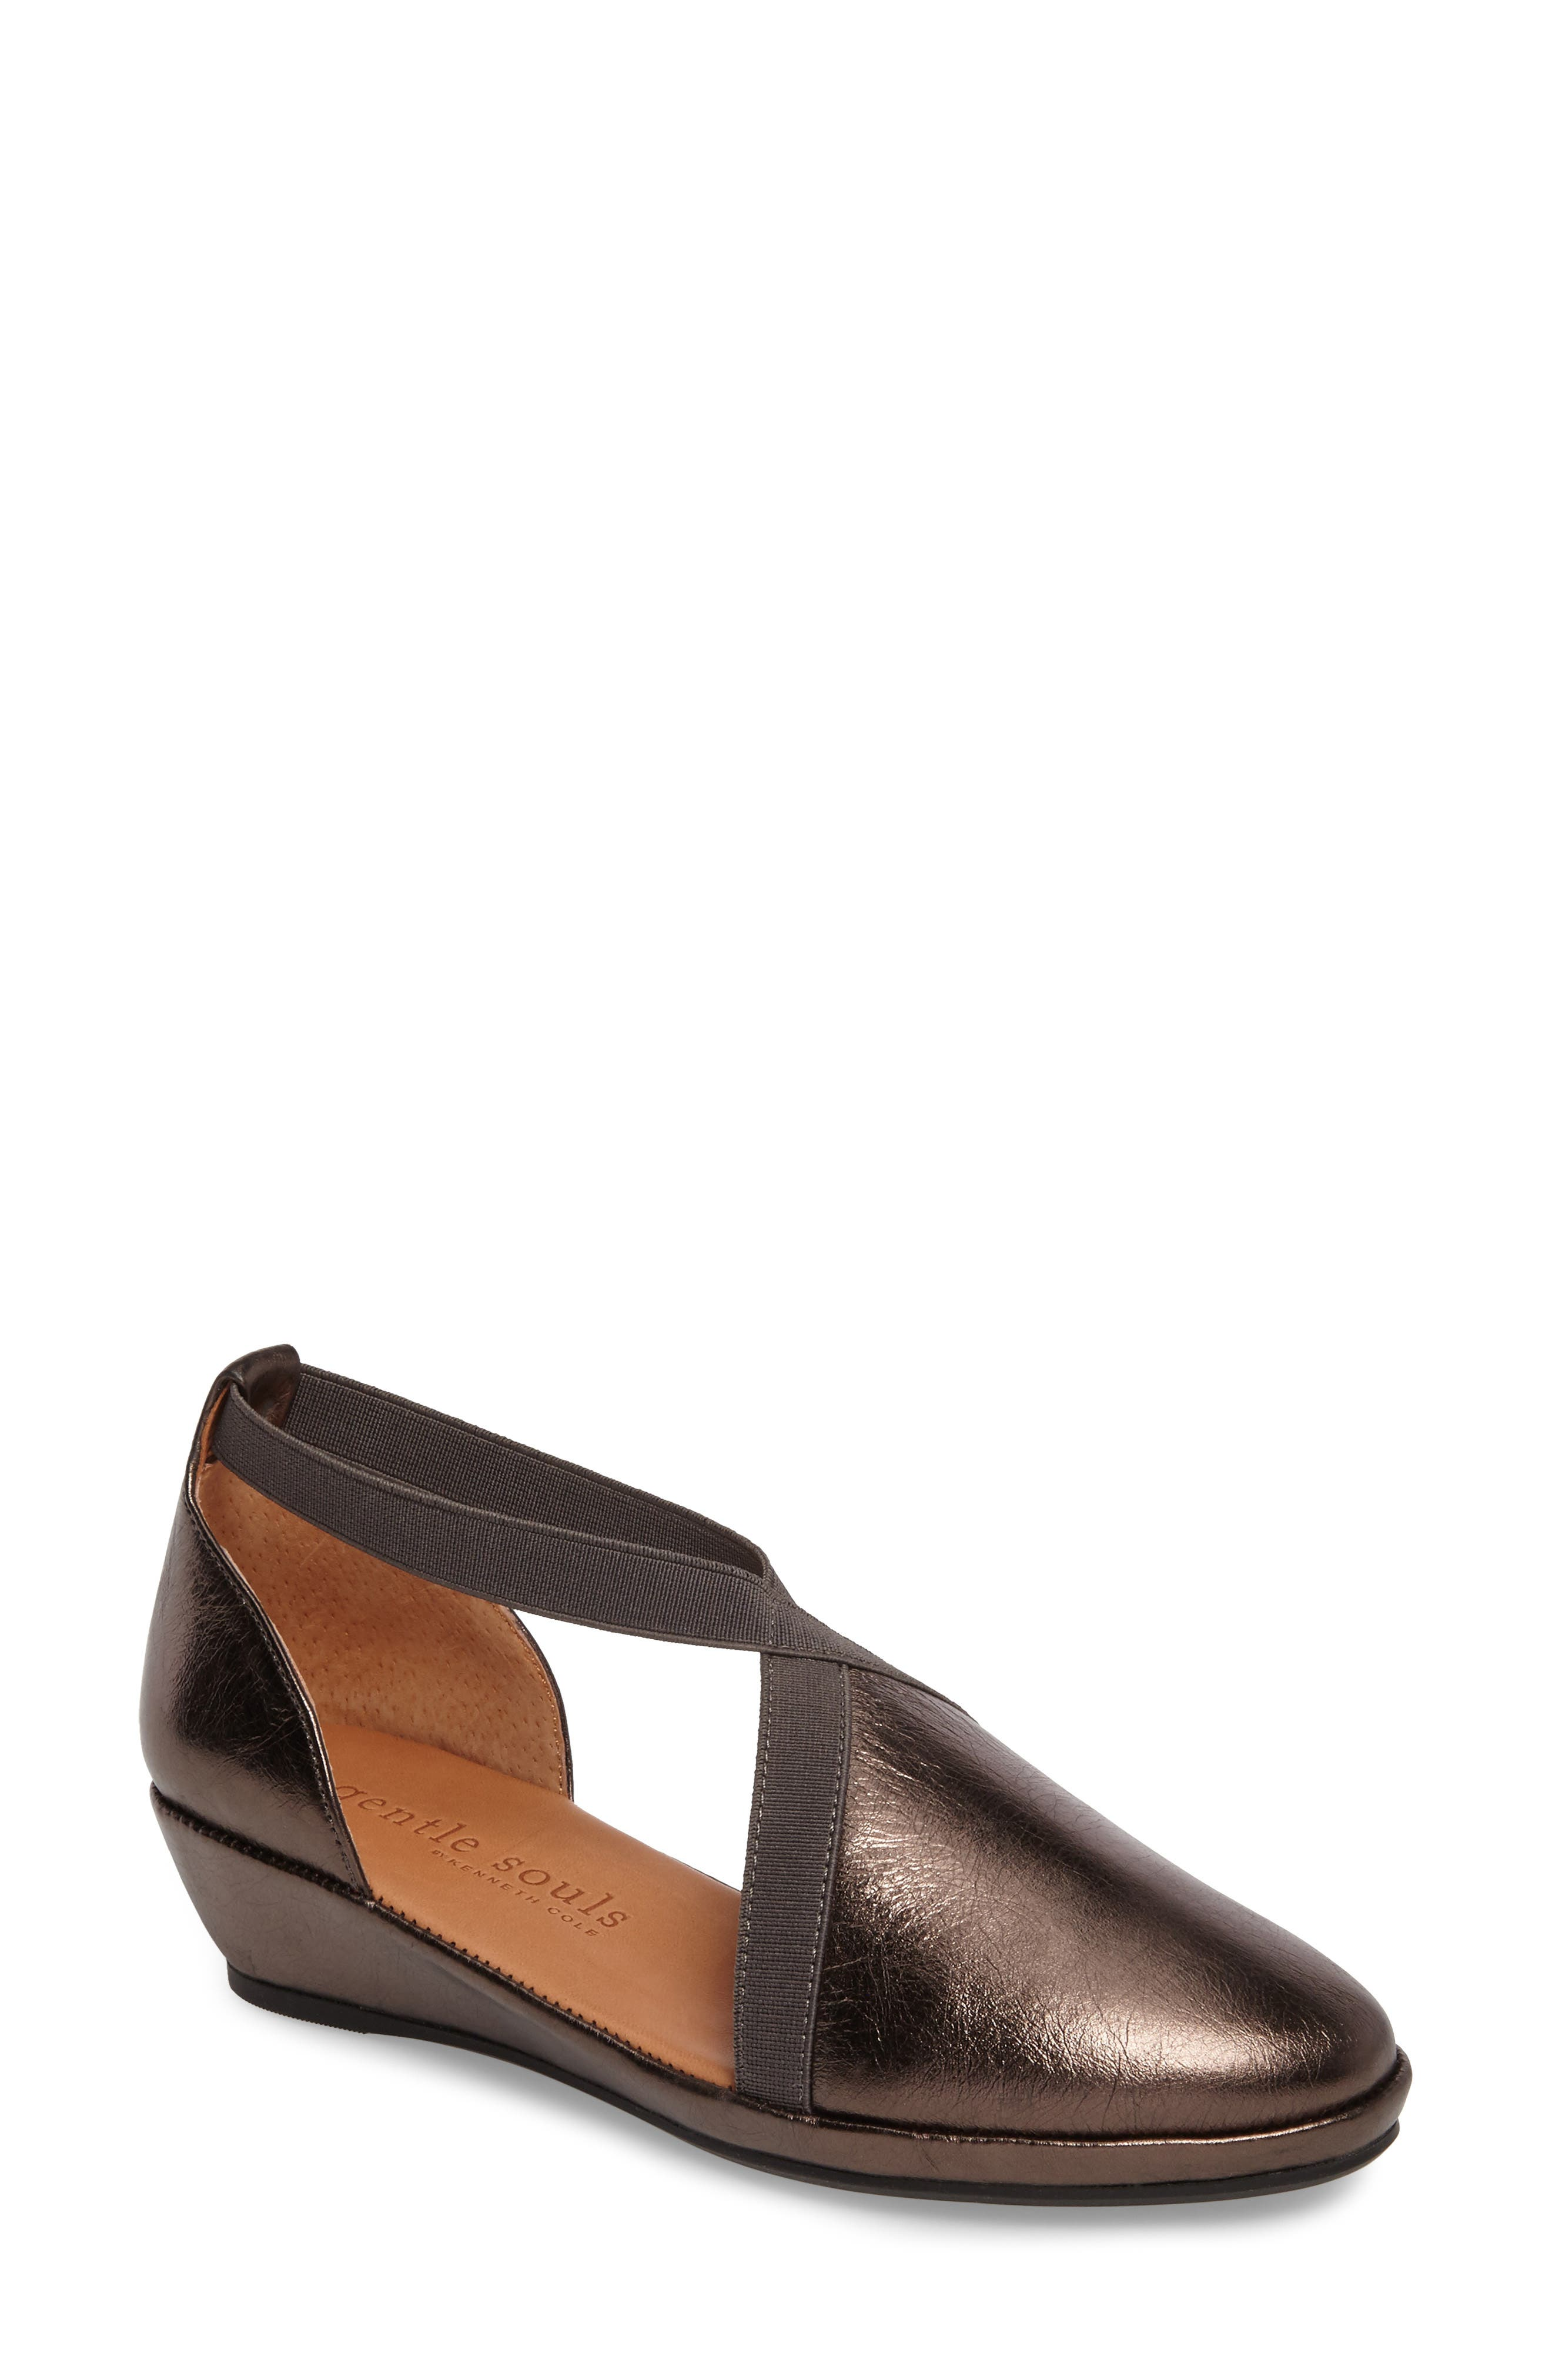 BY KENNETH COLE NATALIA WEDGE